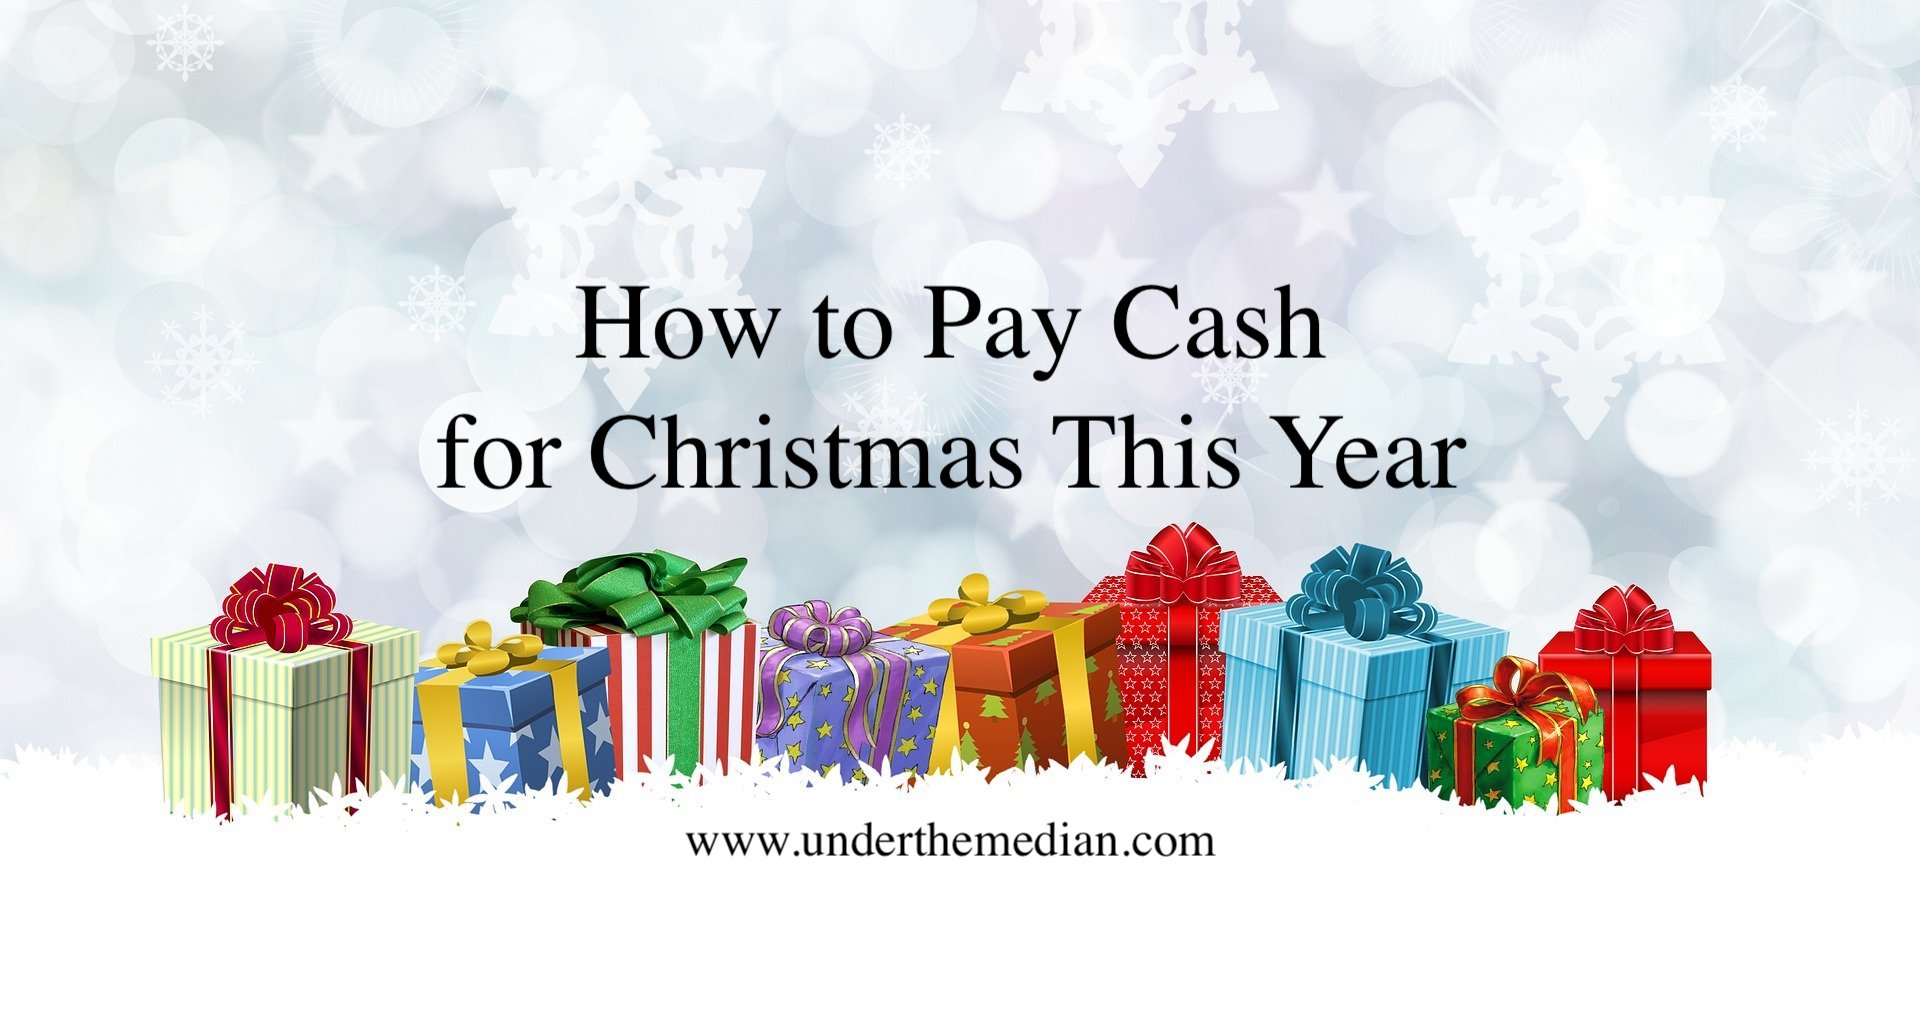 How to Pay Cash for Christmas This Year